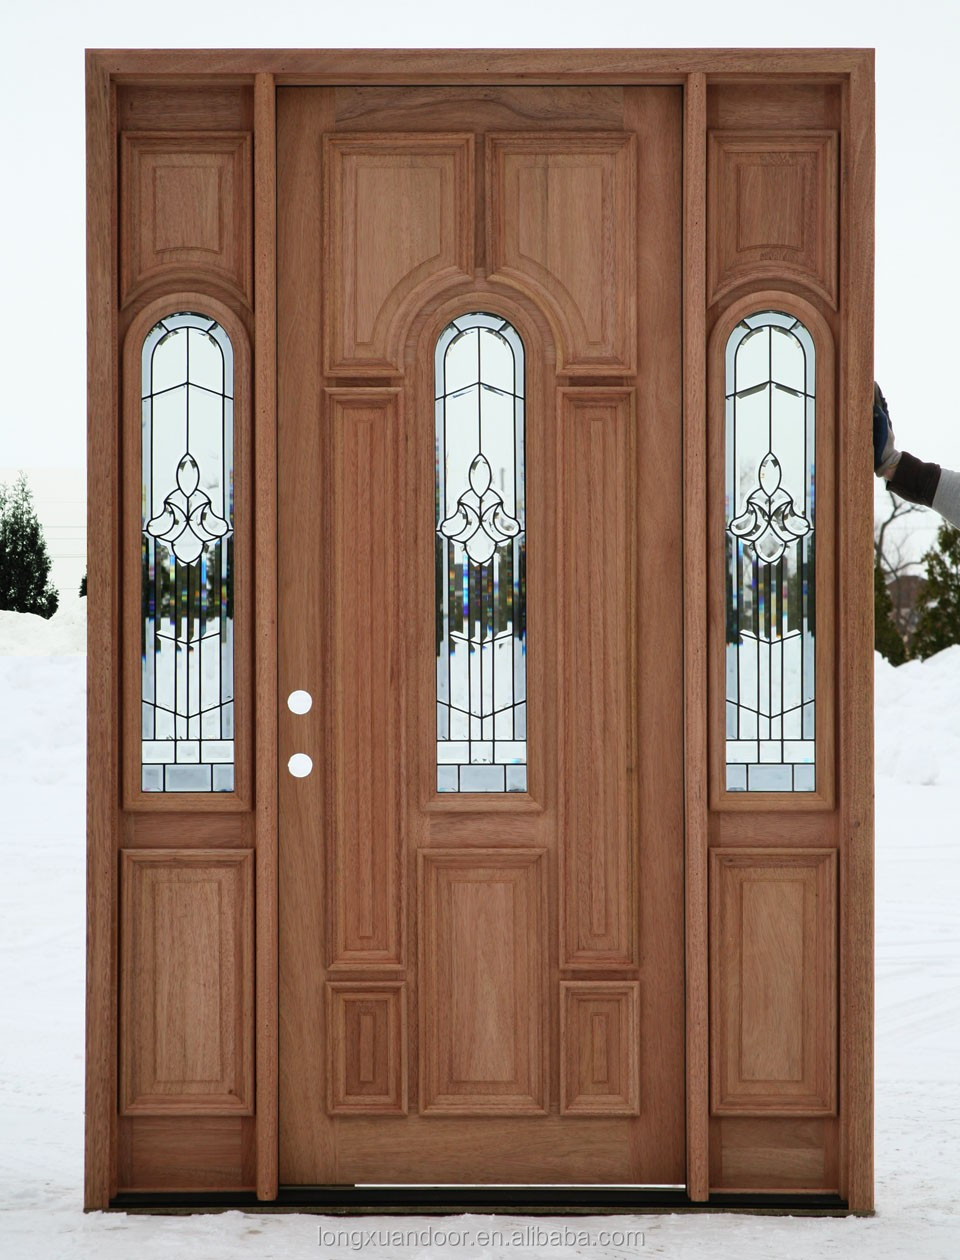 Lowes exterior wood doors used exterior doors for sale for External front doors for sale